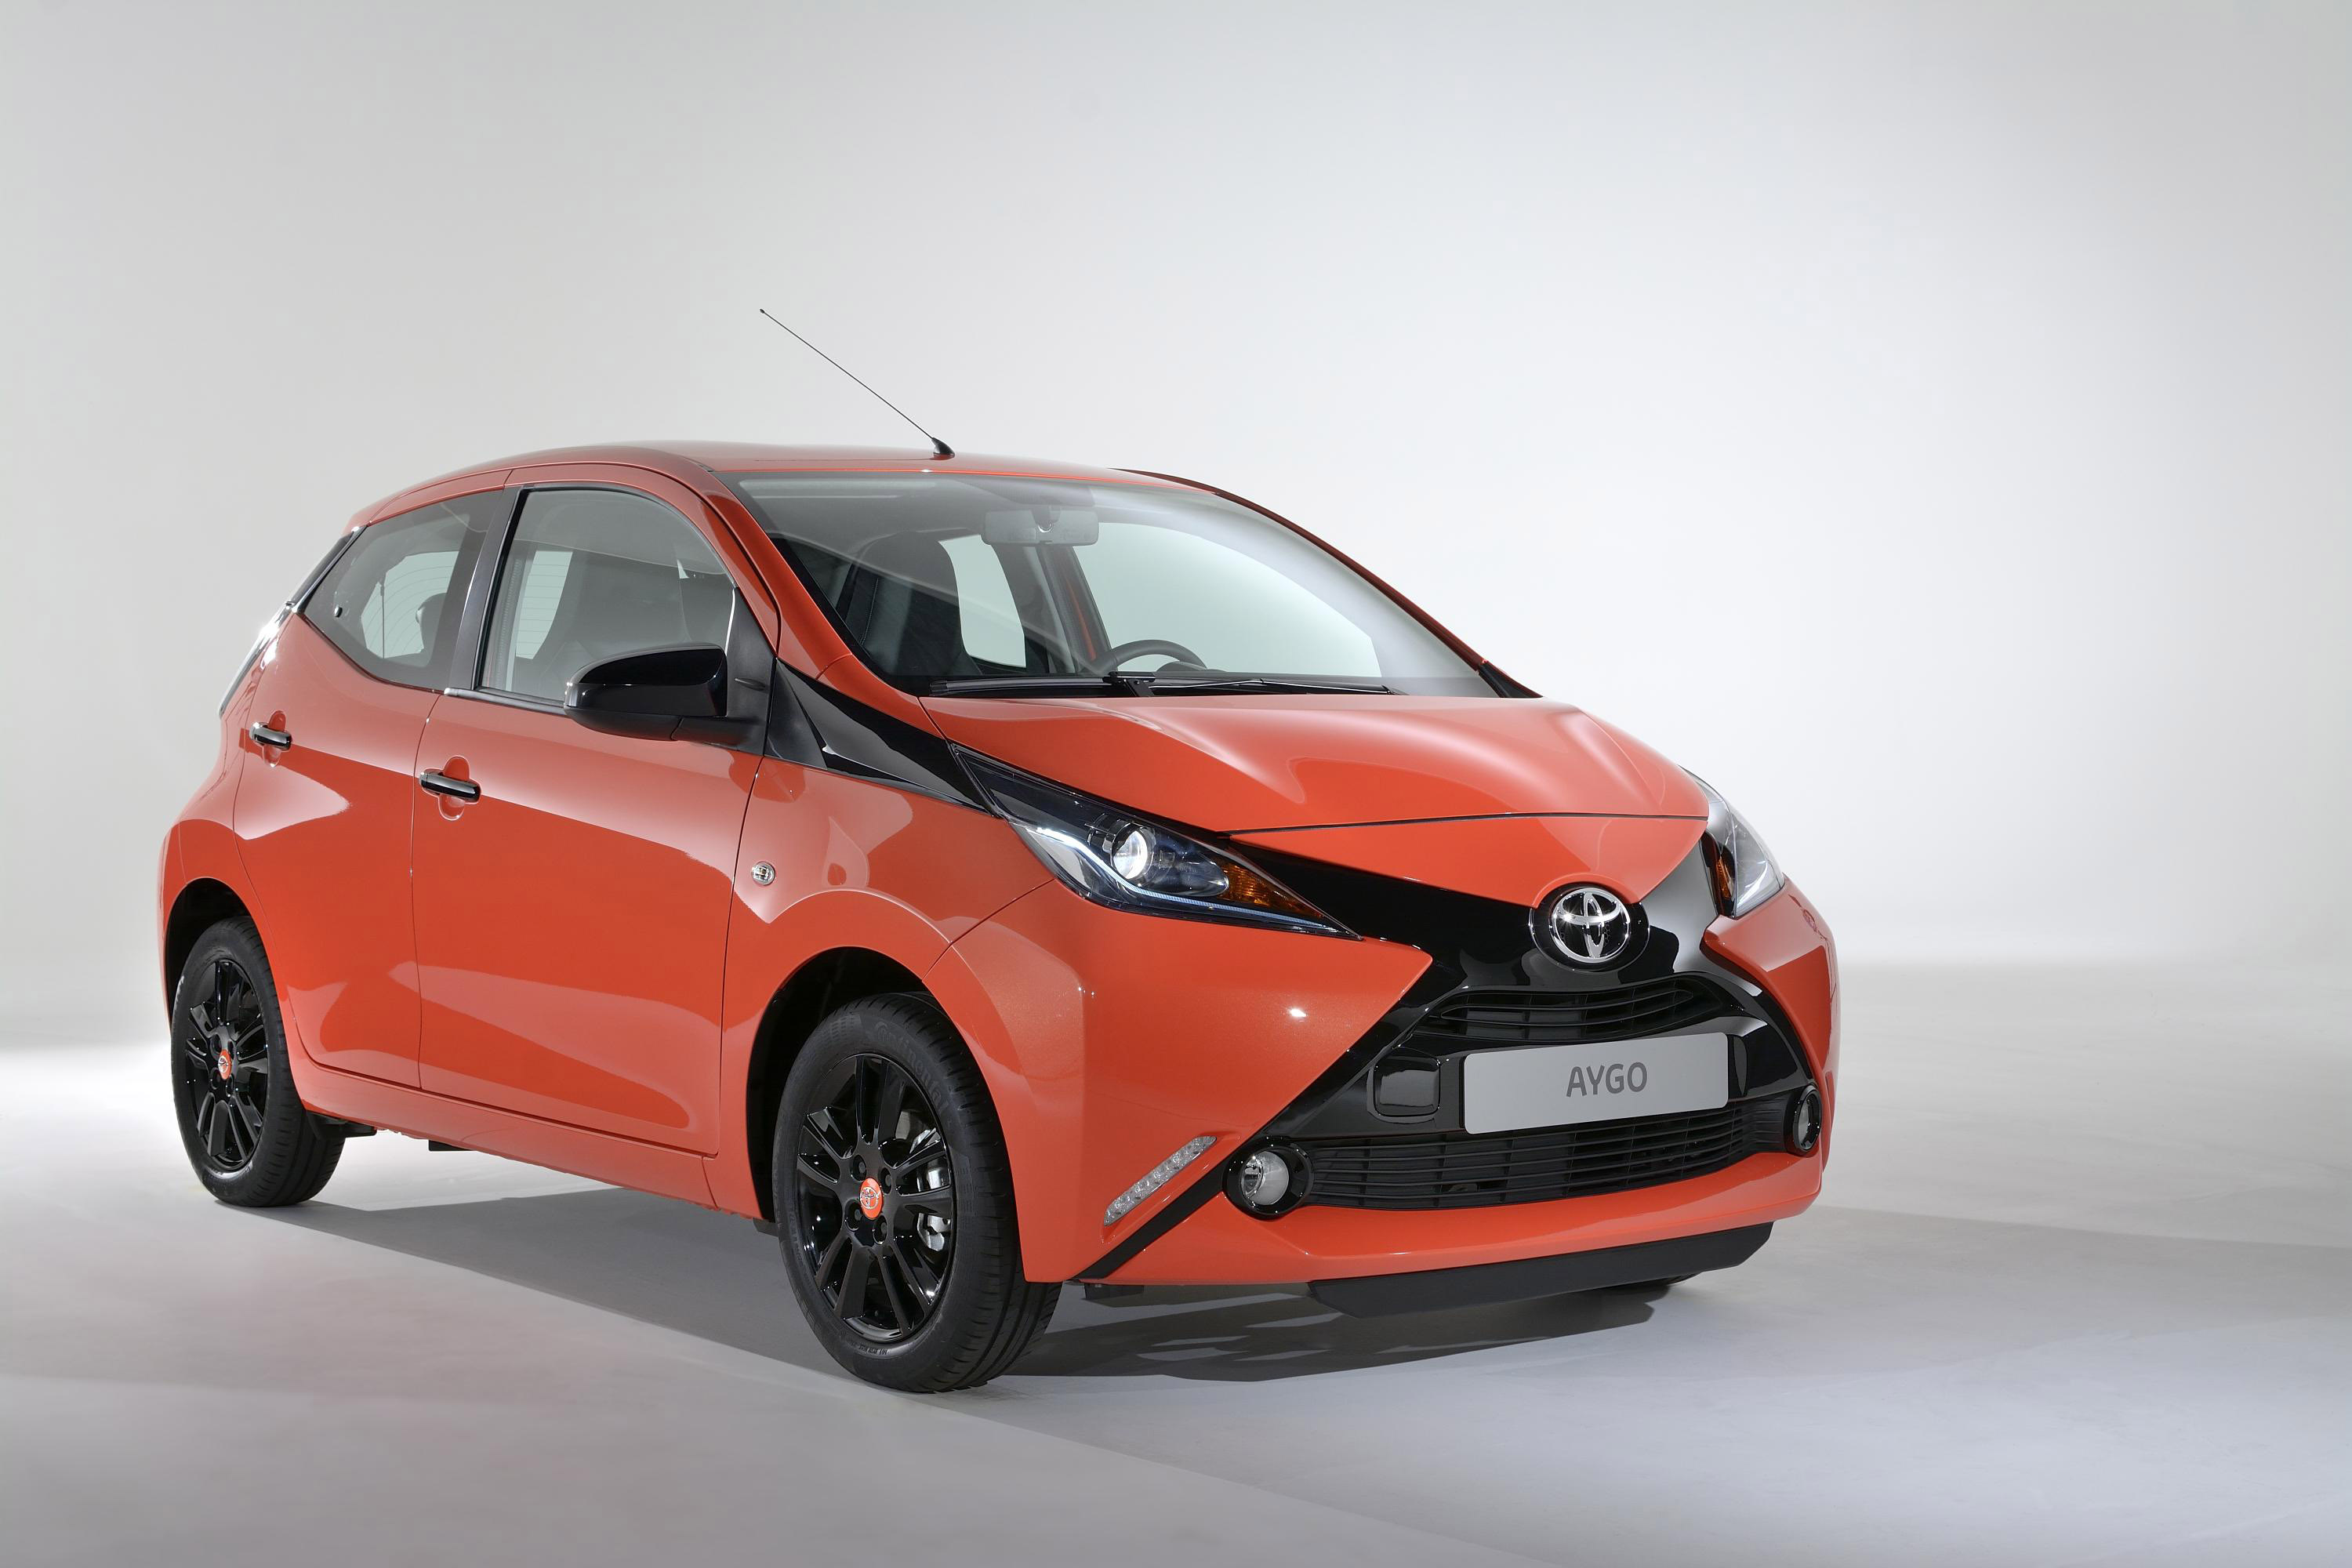 2015 toyota aygo x cite is ready to excite europe. Black Bedroom Furniture Sets. Home Design Ideas